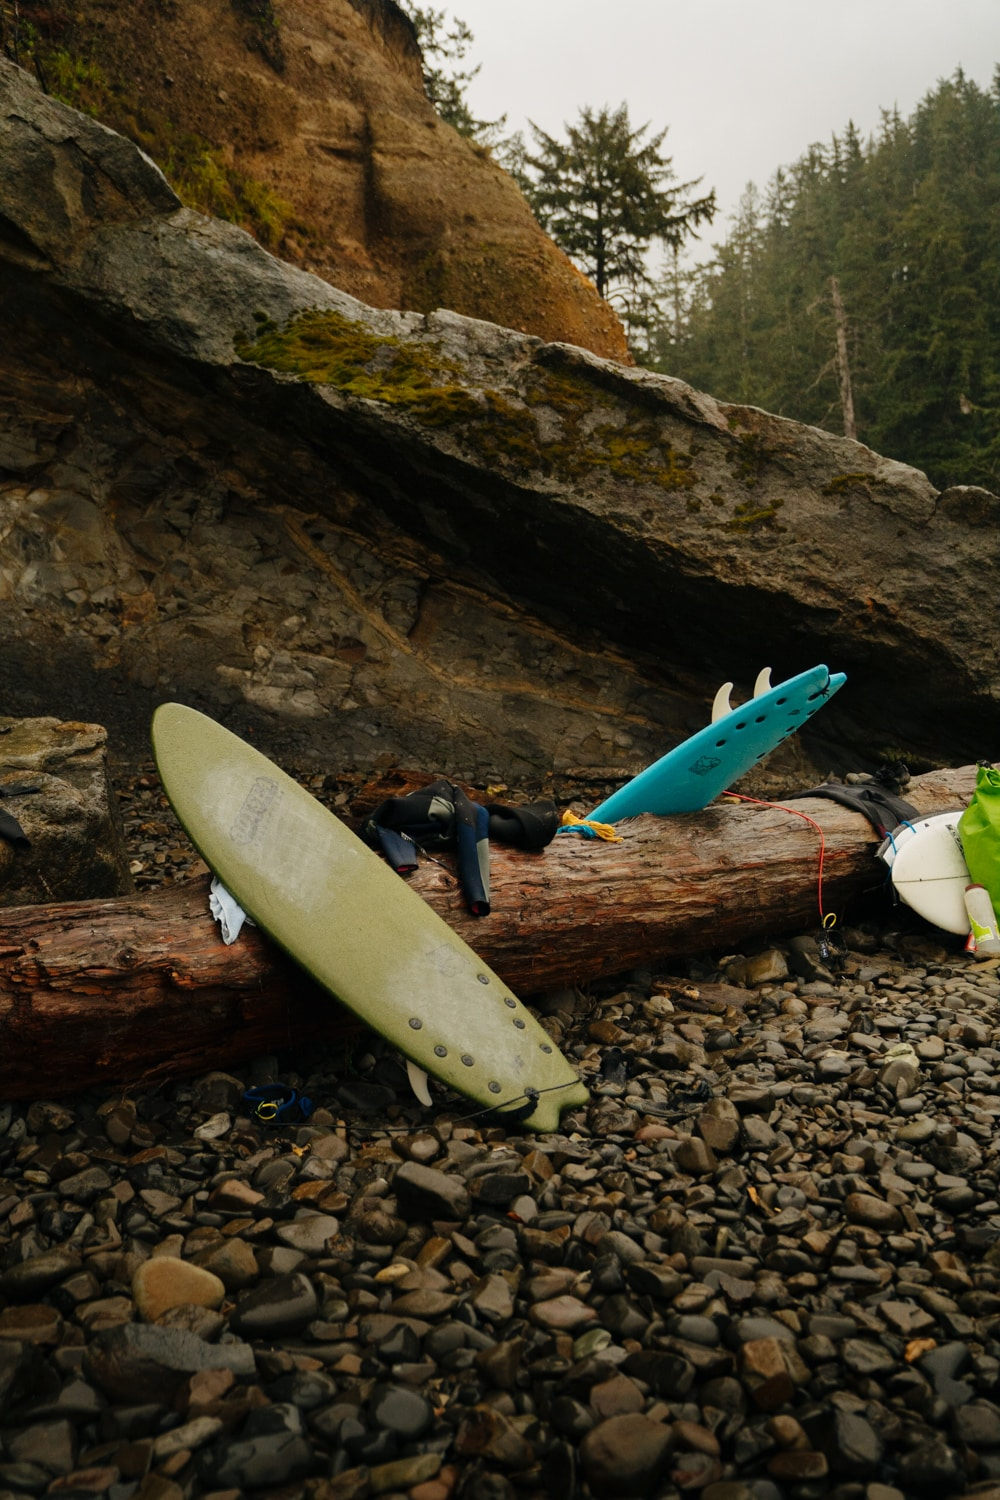 A surfboard is leaning on driftwood at Short Sands Beach.